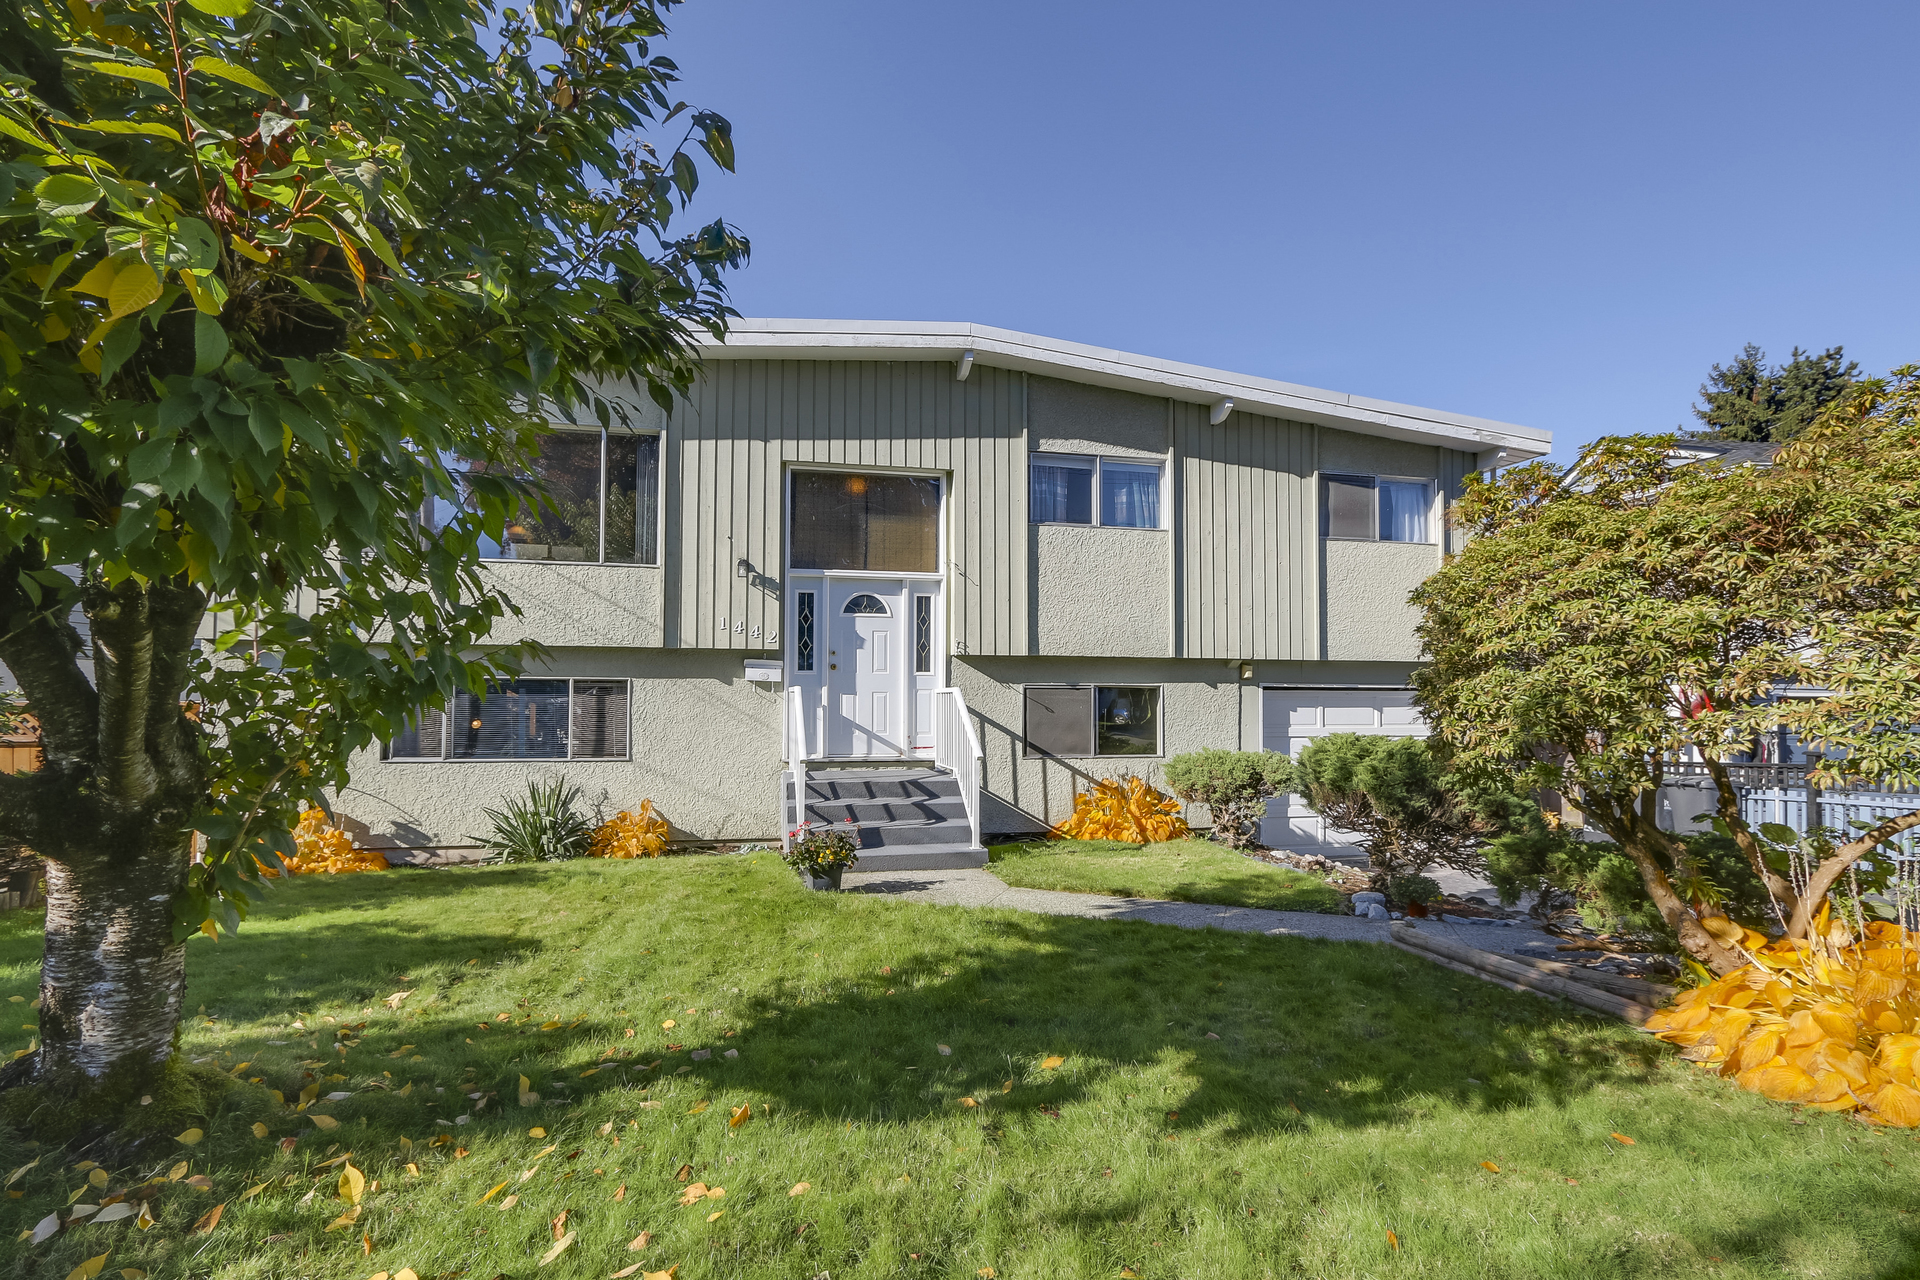 Front View at 1442 Denise Place, Mary Hill, Port Coquitlam